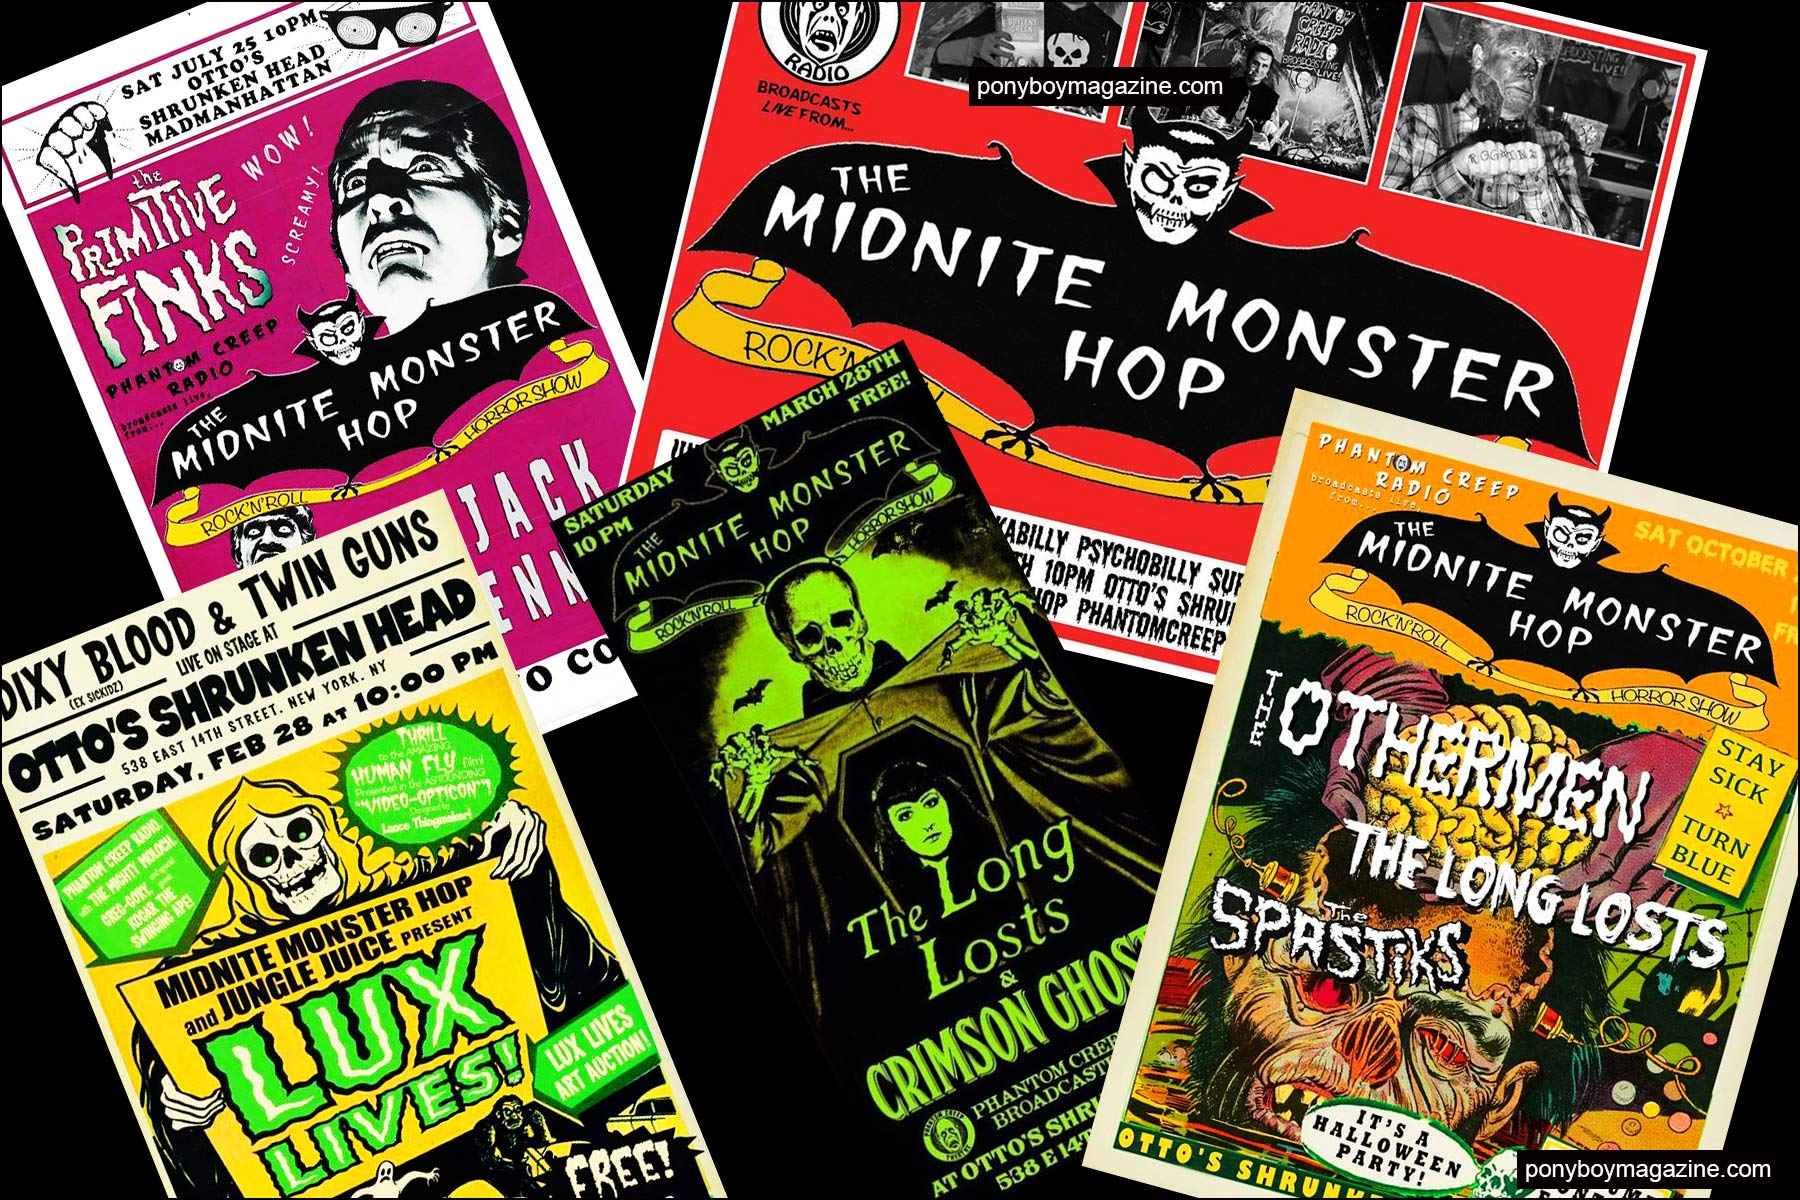 Colorful flyers from the Midnite Monster Hop. Ponyboy magazine NY.